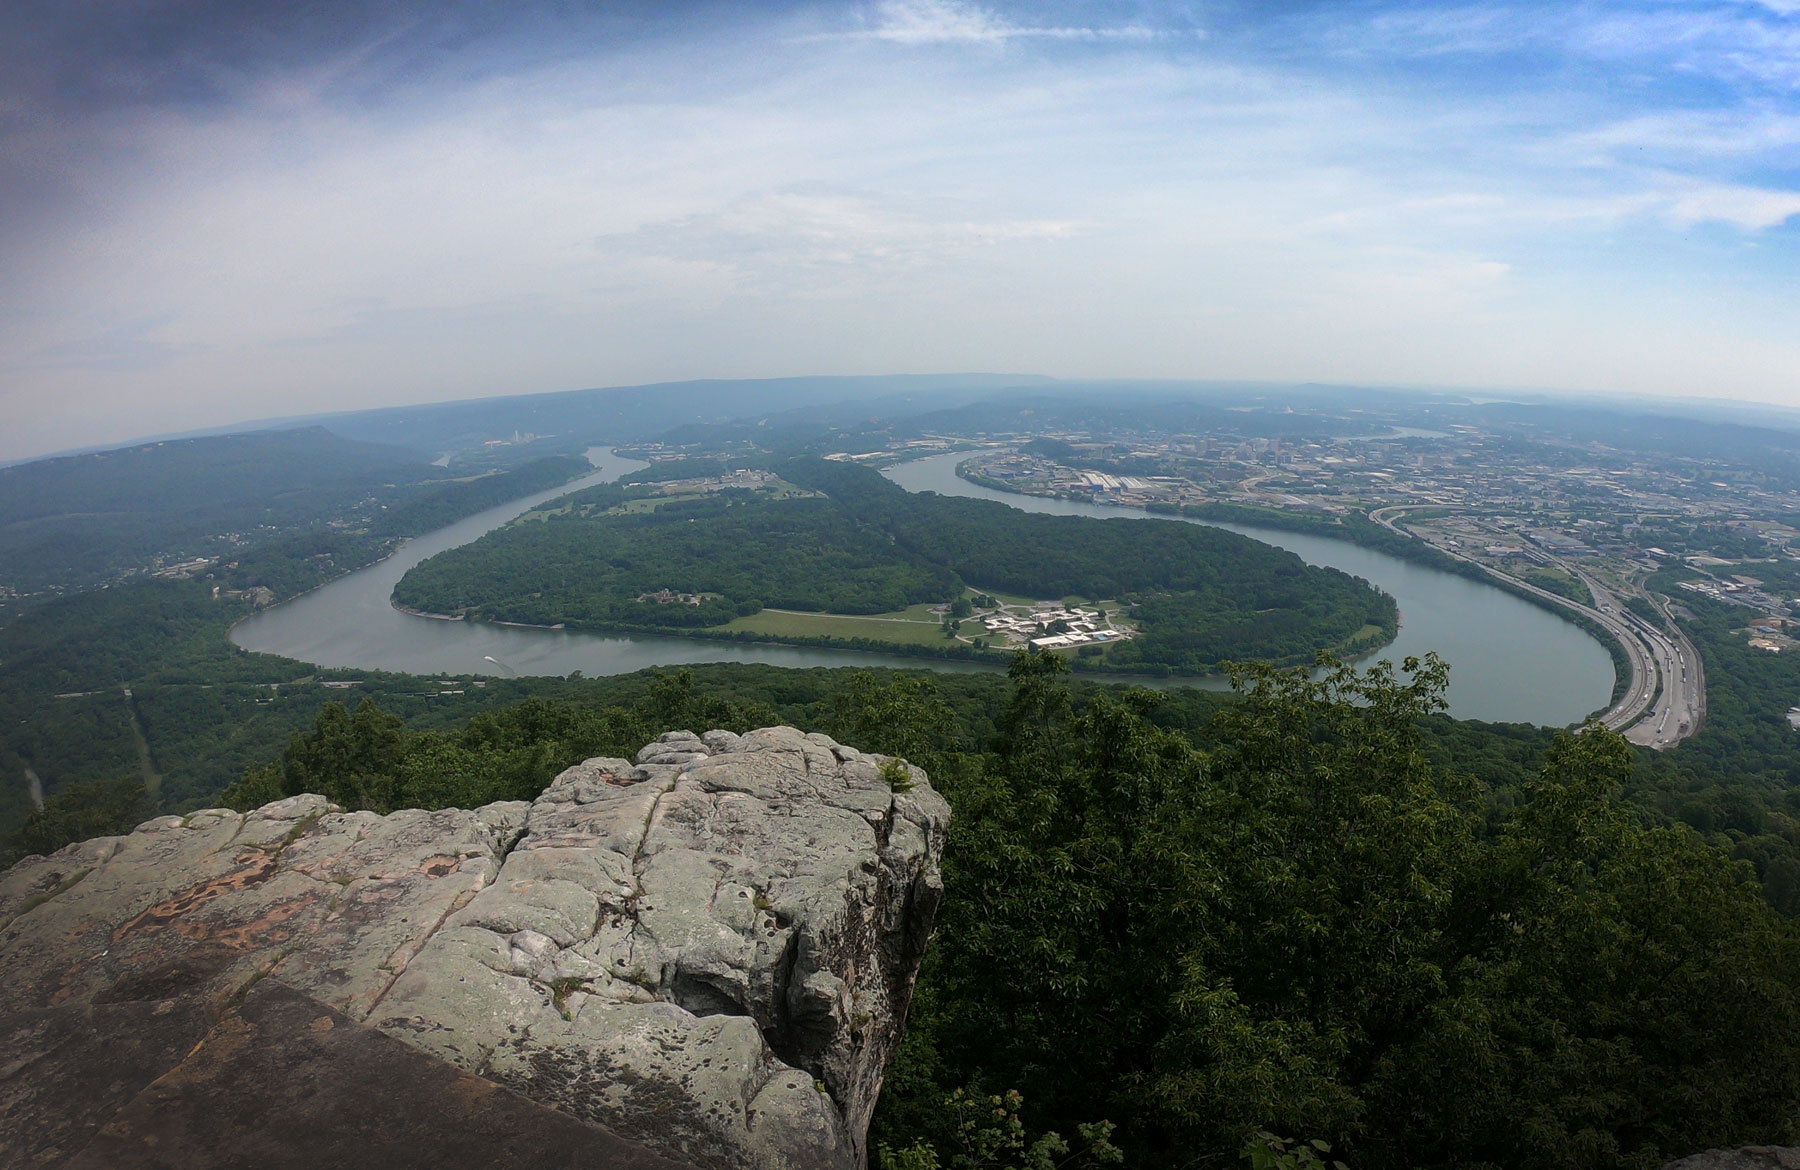 Stone overlook of Moccasin Bend in Chattanooga, Tennessee